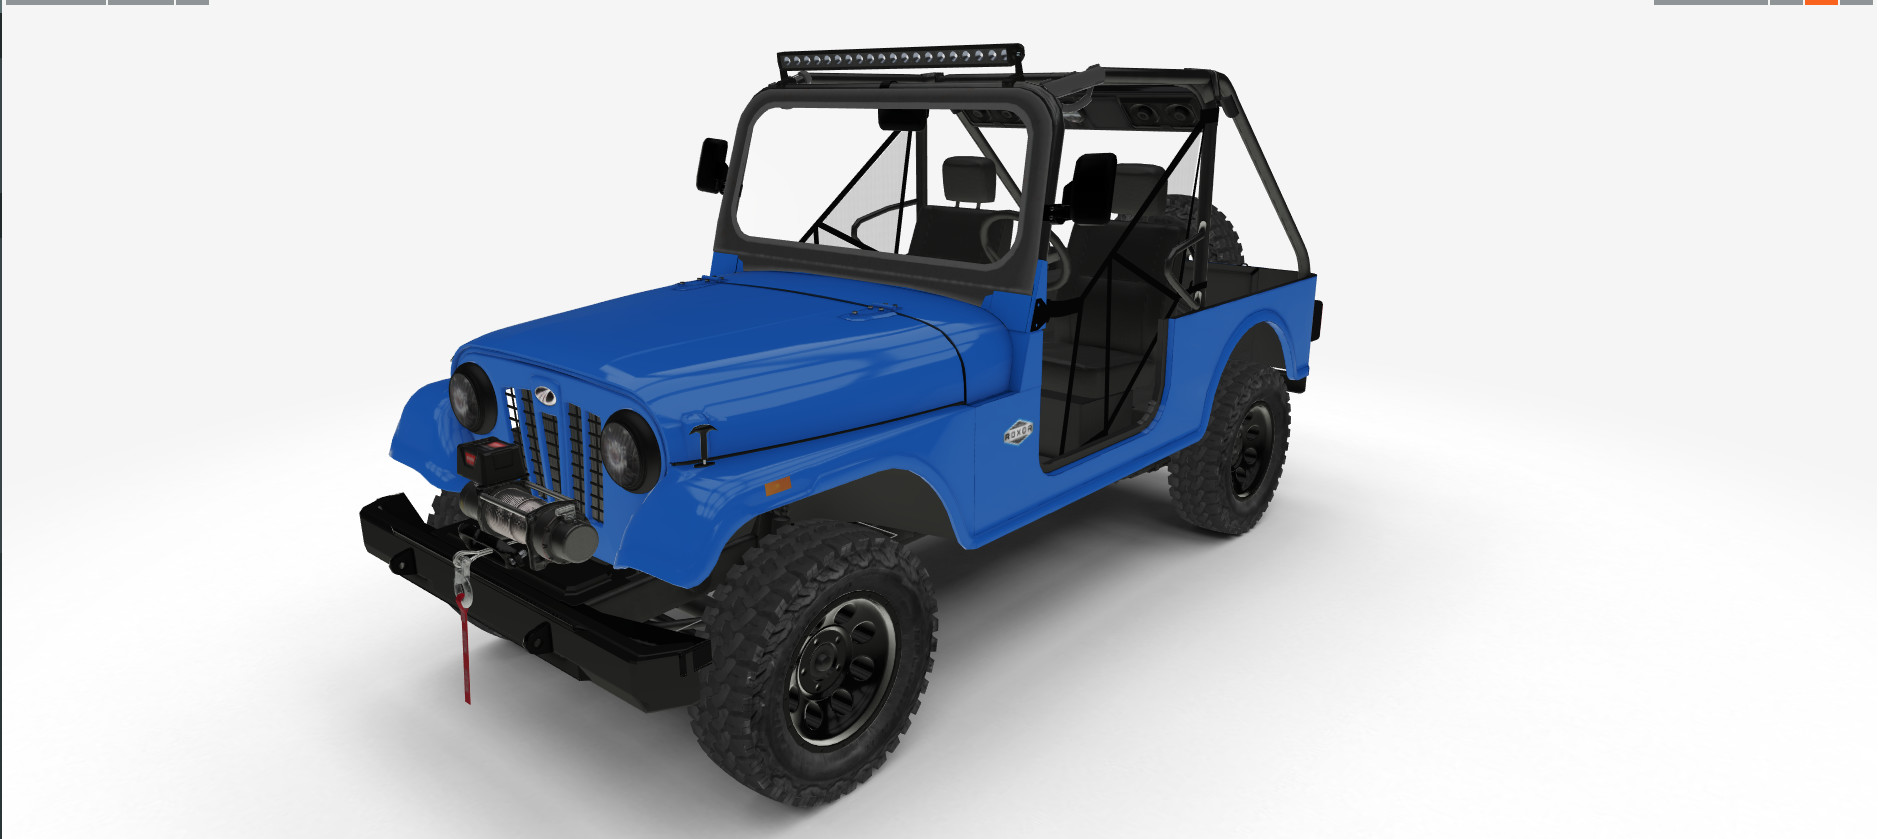 Mahindra Vehicle Configurator